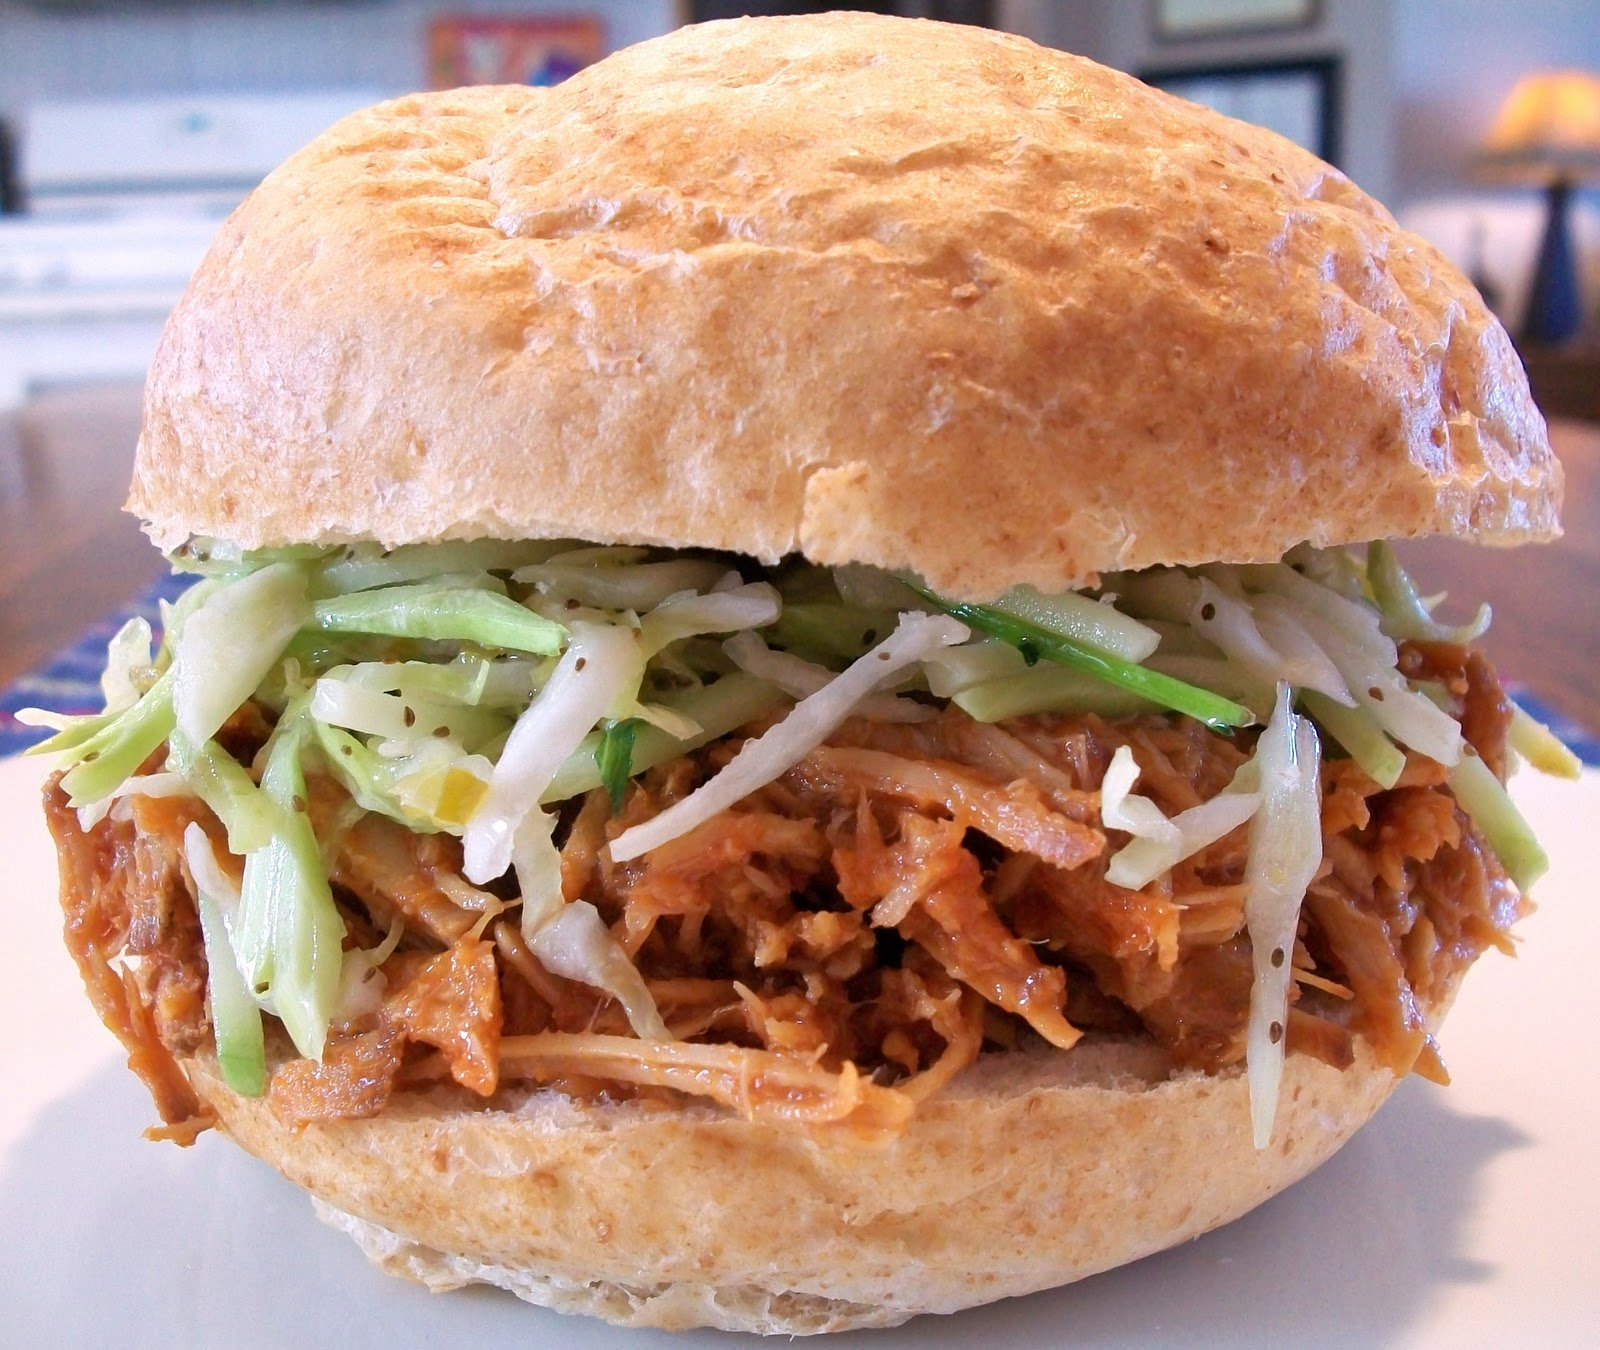 My Kind of Cooking: Pulled Pork Sandwiches with Mexican Coleslaw